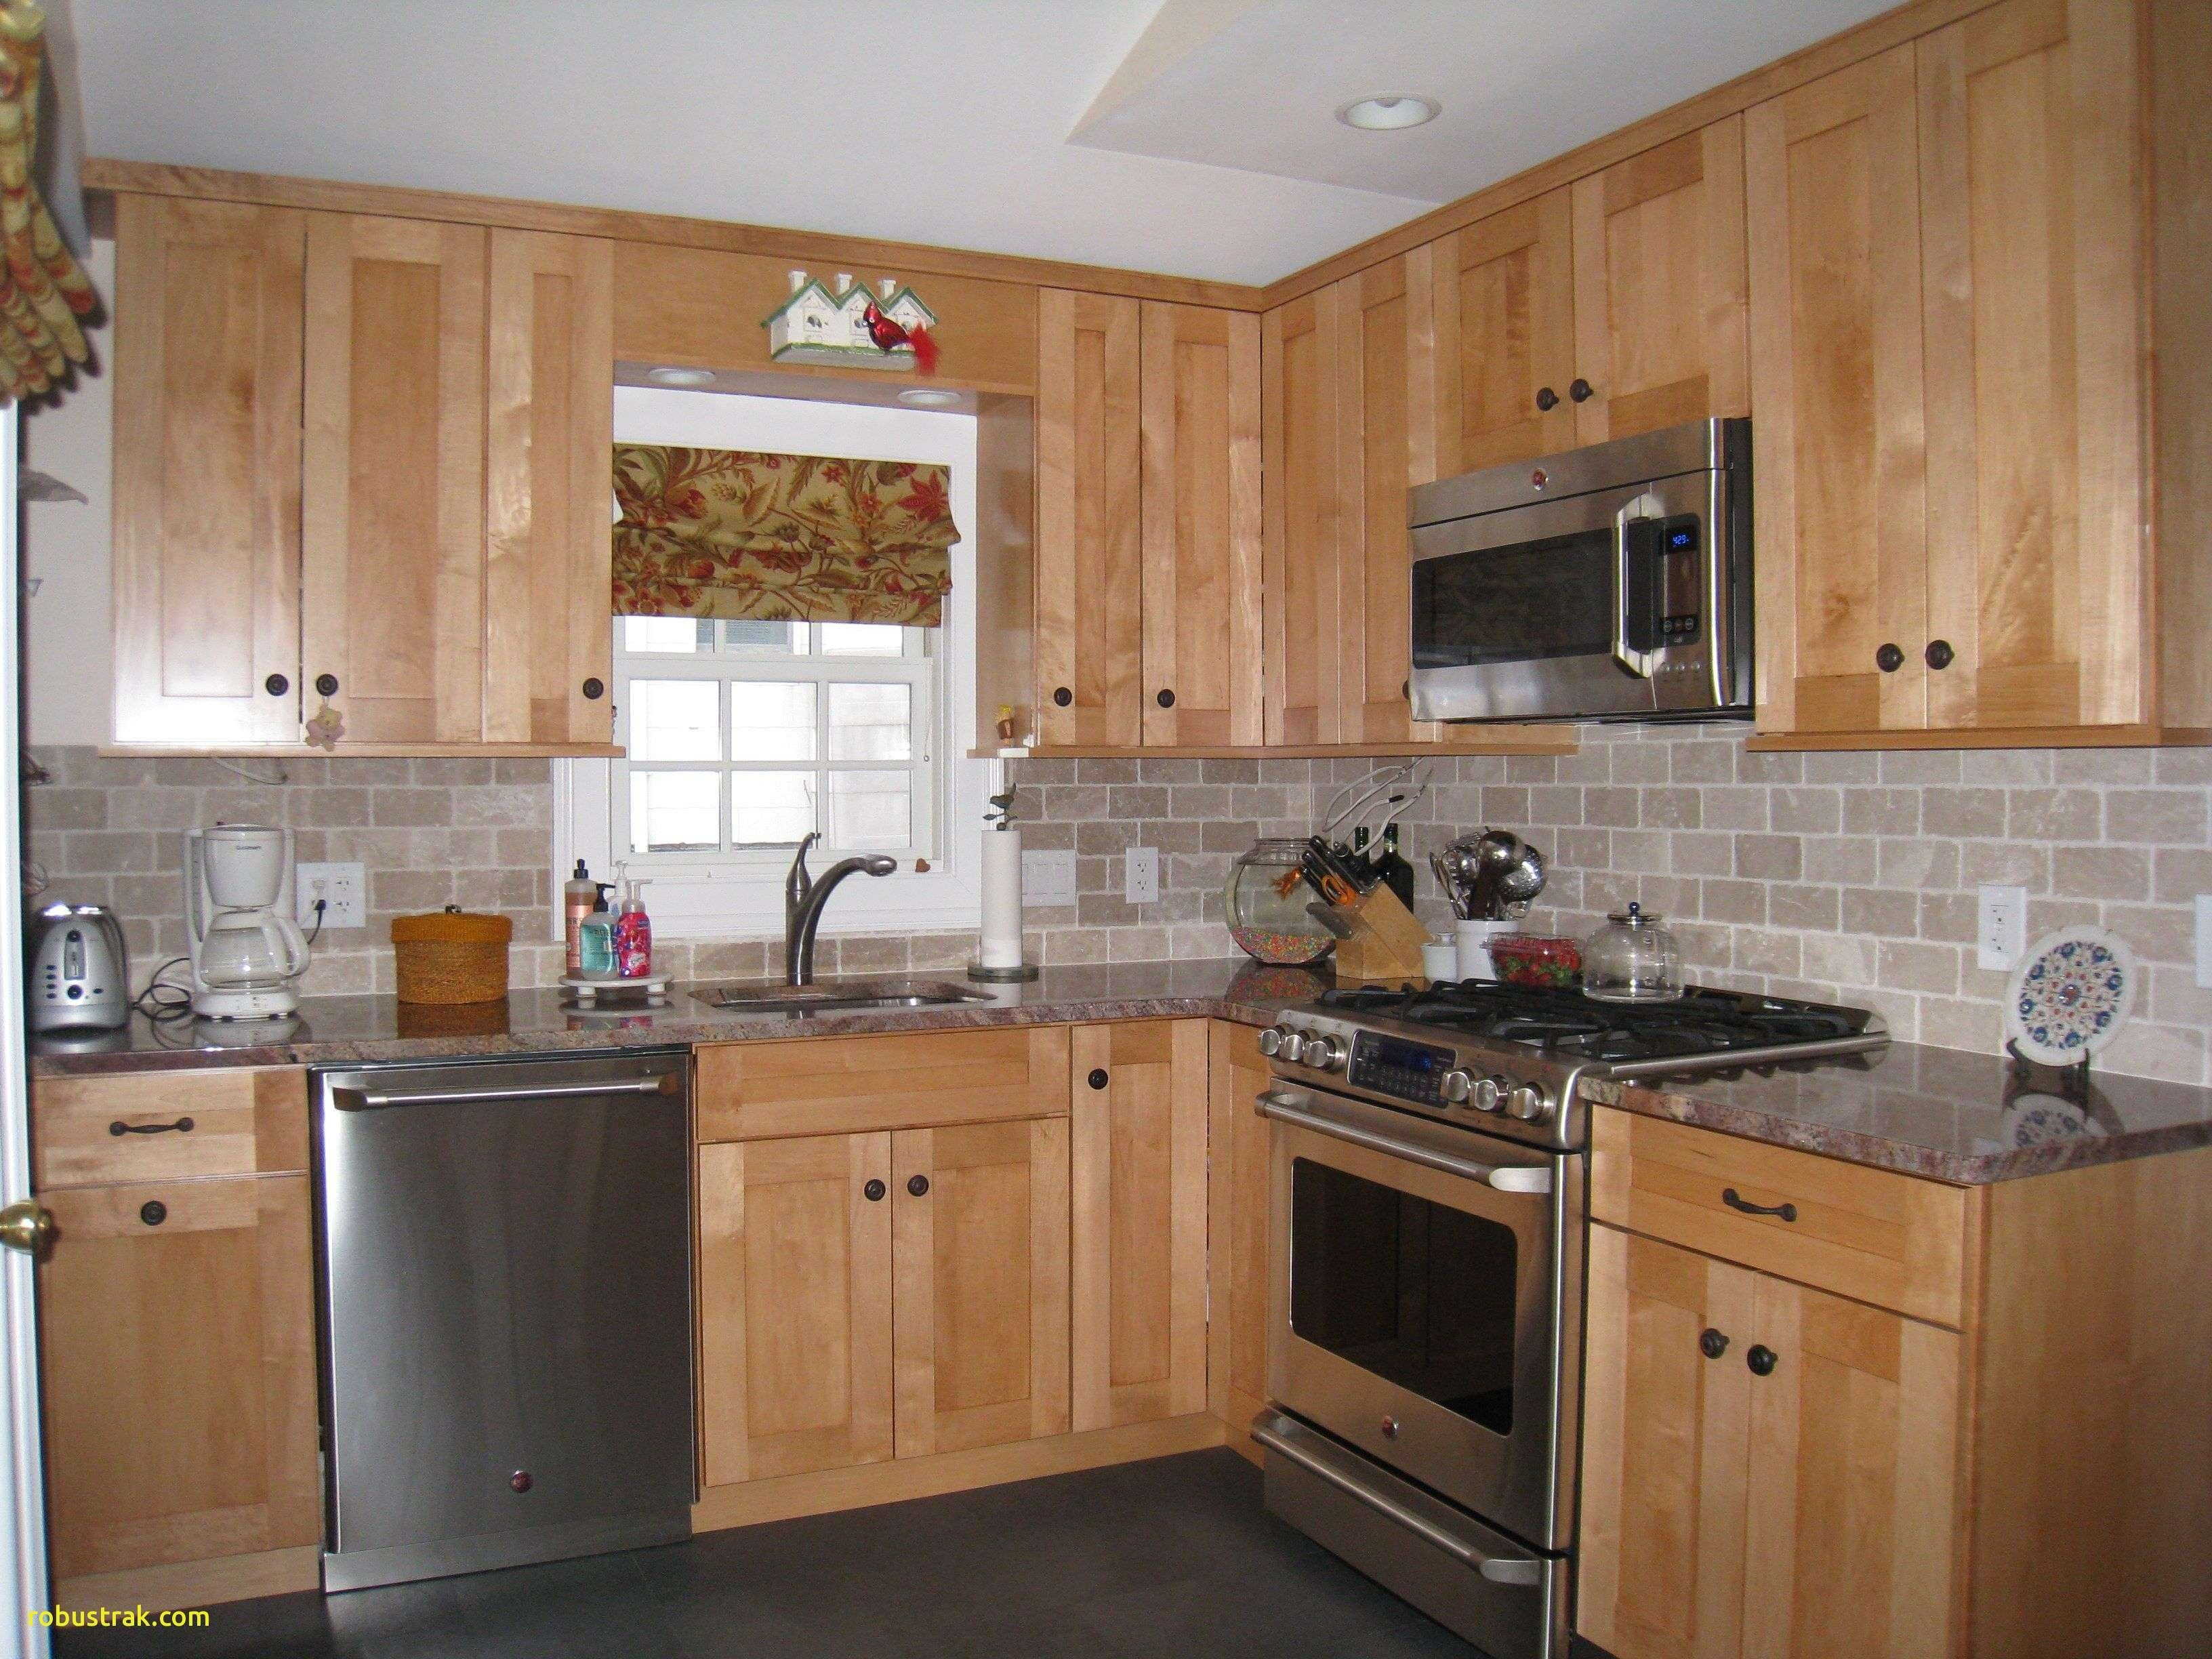 New Post Unique Kitchen Tile Ideas With Oak Cabinets Visit